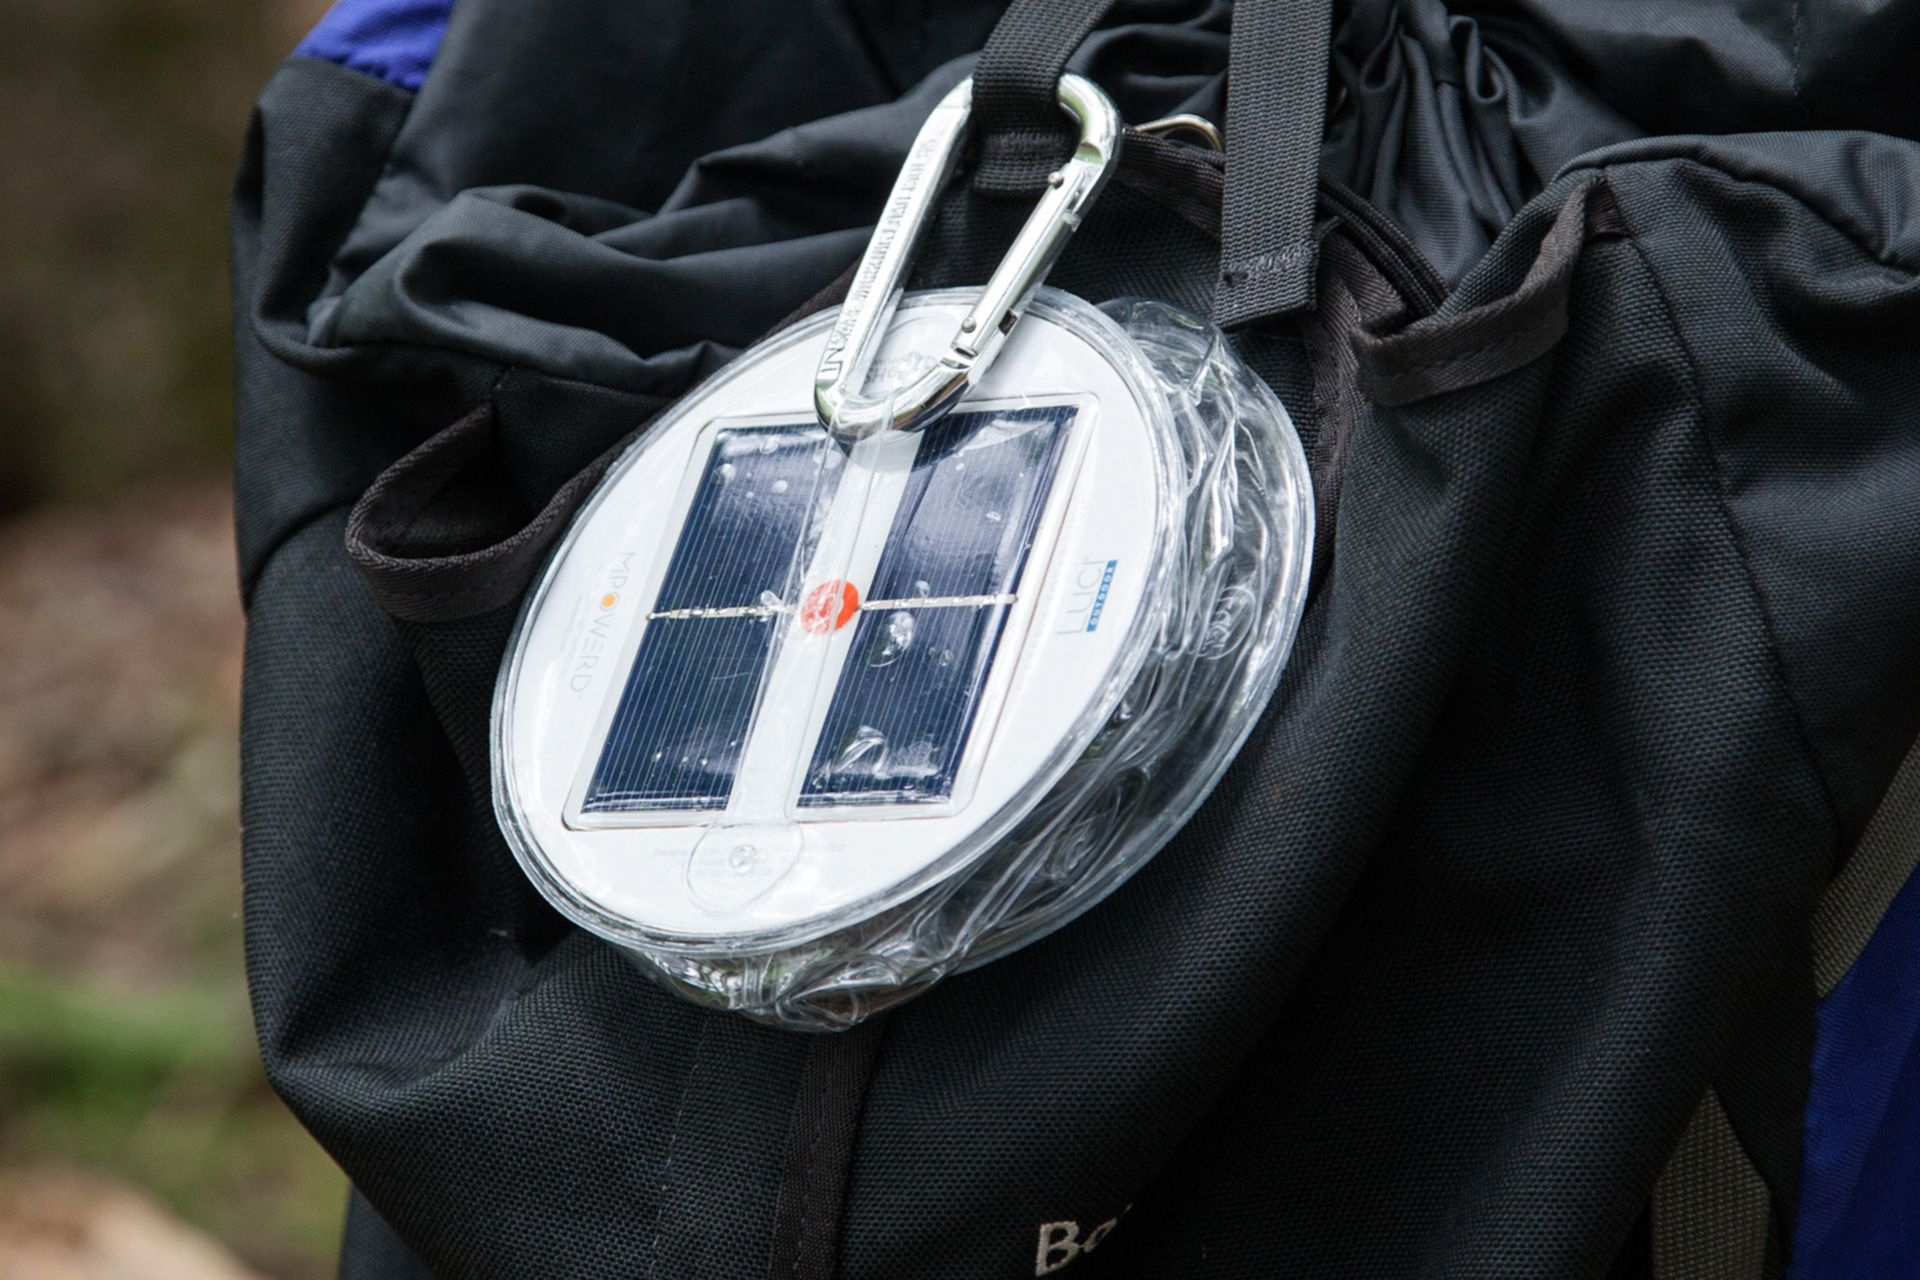 What's easier than attaching this lightweight lantern to your backpack and heading out the door? - Luci Outdoor. Inflatable Solar Light | Outdoor Lighting | Nature | Camping | Hiking